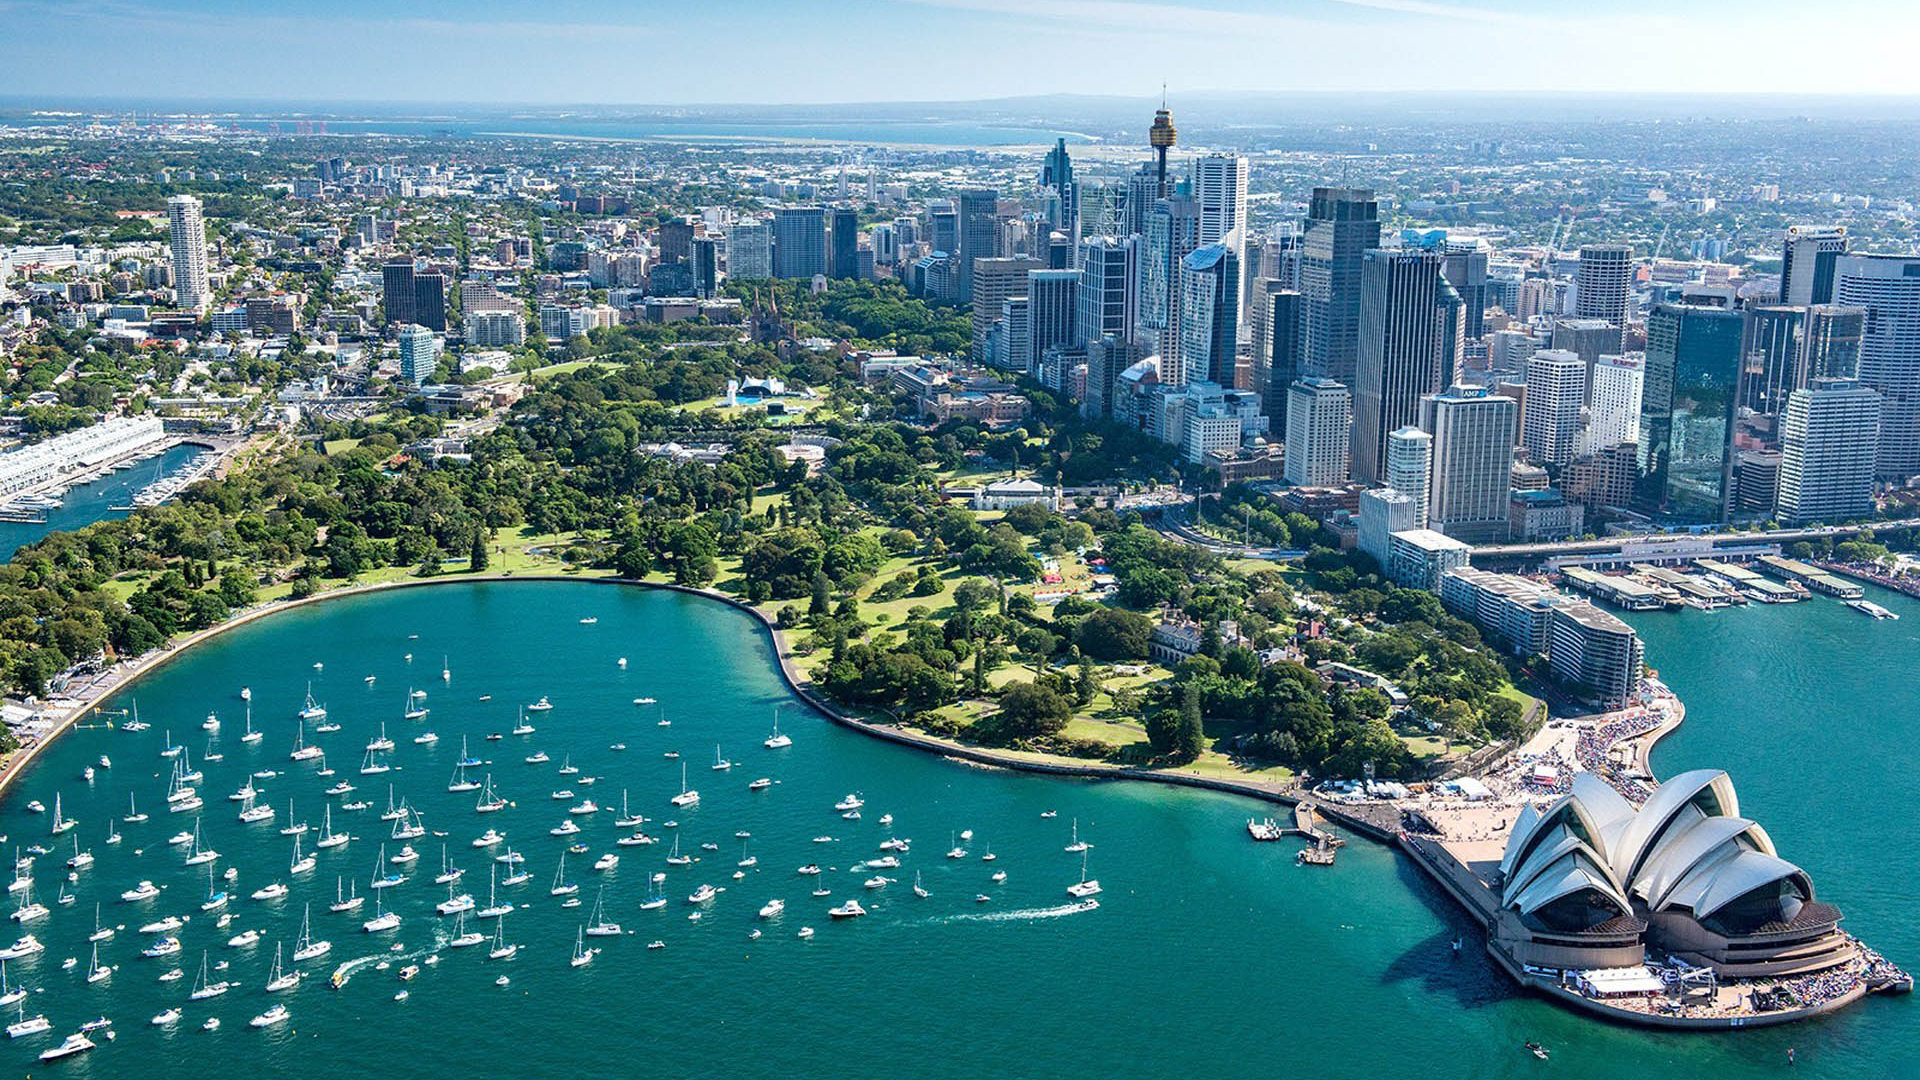 Car Wallpaper 1280x1024 Sydney Is The State Capital Of New South Wales And The